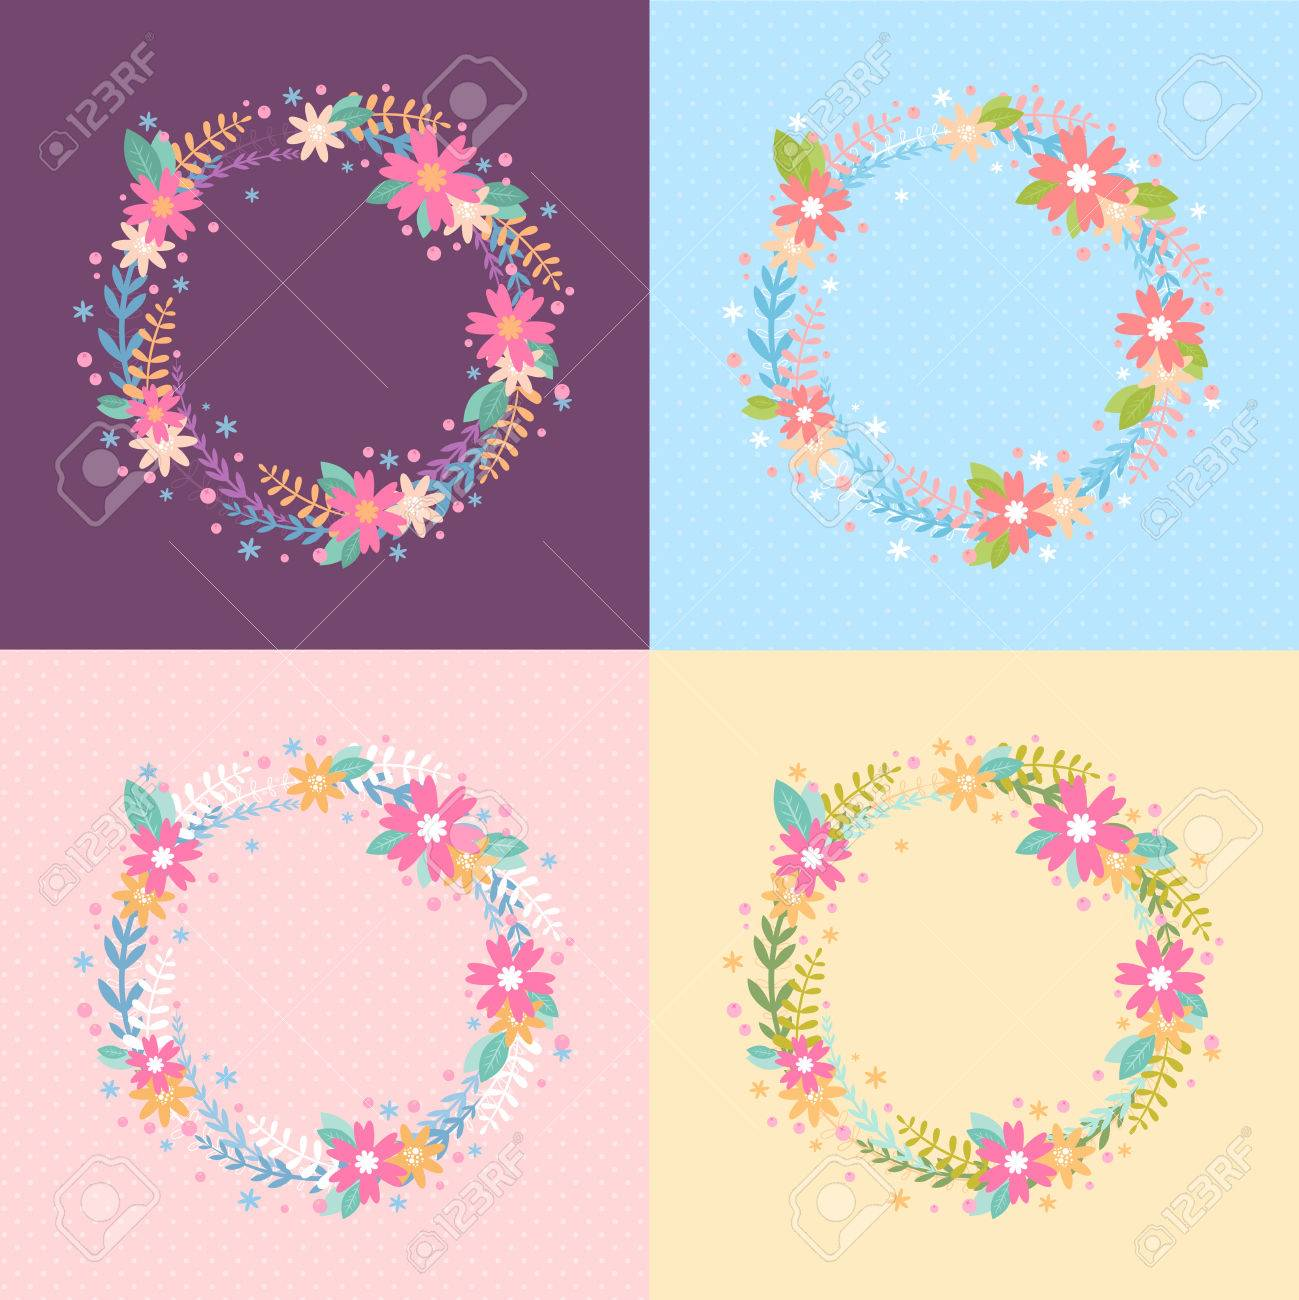 Free wedding invitation vector template awesome graphic library elegant floral wreath card for wedding invitation save the date rh 123rf com free wedding invitation template vector stopboris Choice Image